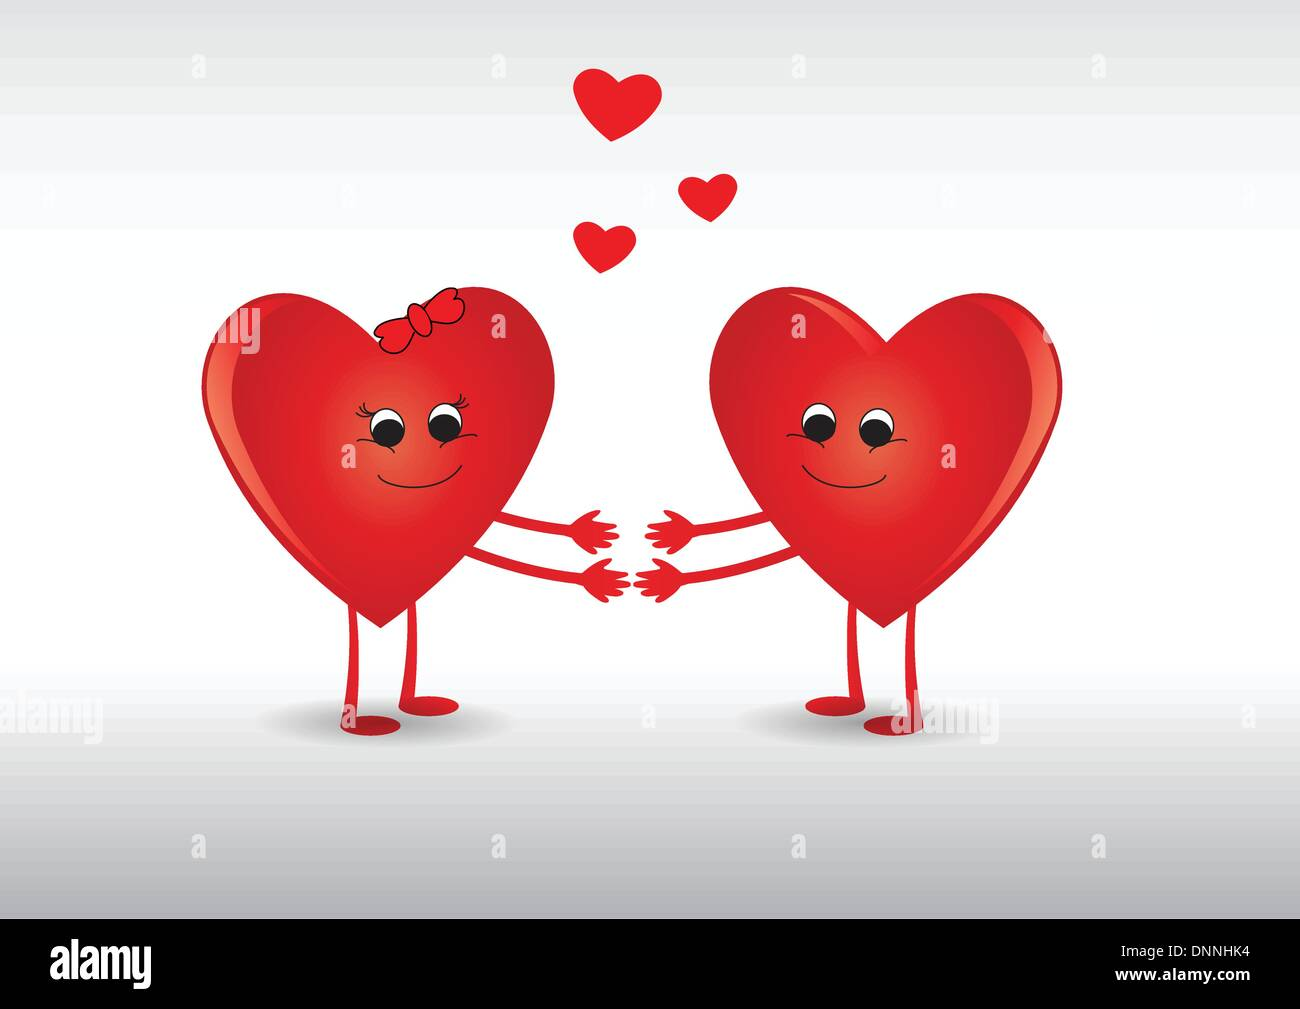 Funny card with hearts on valentine's day - Stock Image